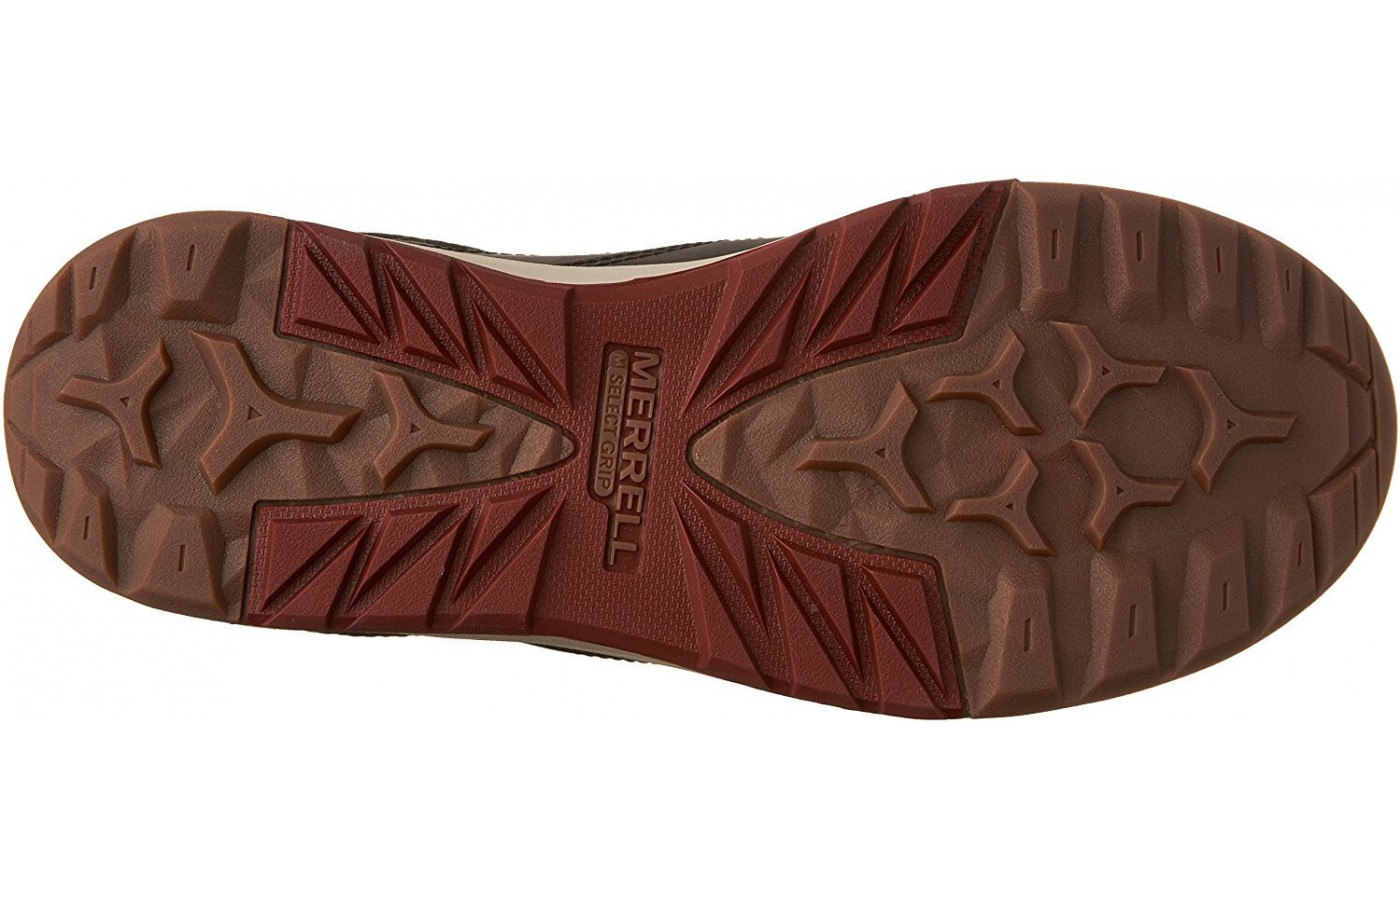 The Merrell Berner Shift Lace has an M Select Grip outsole